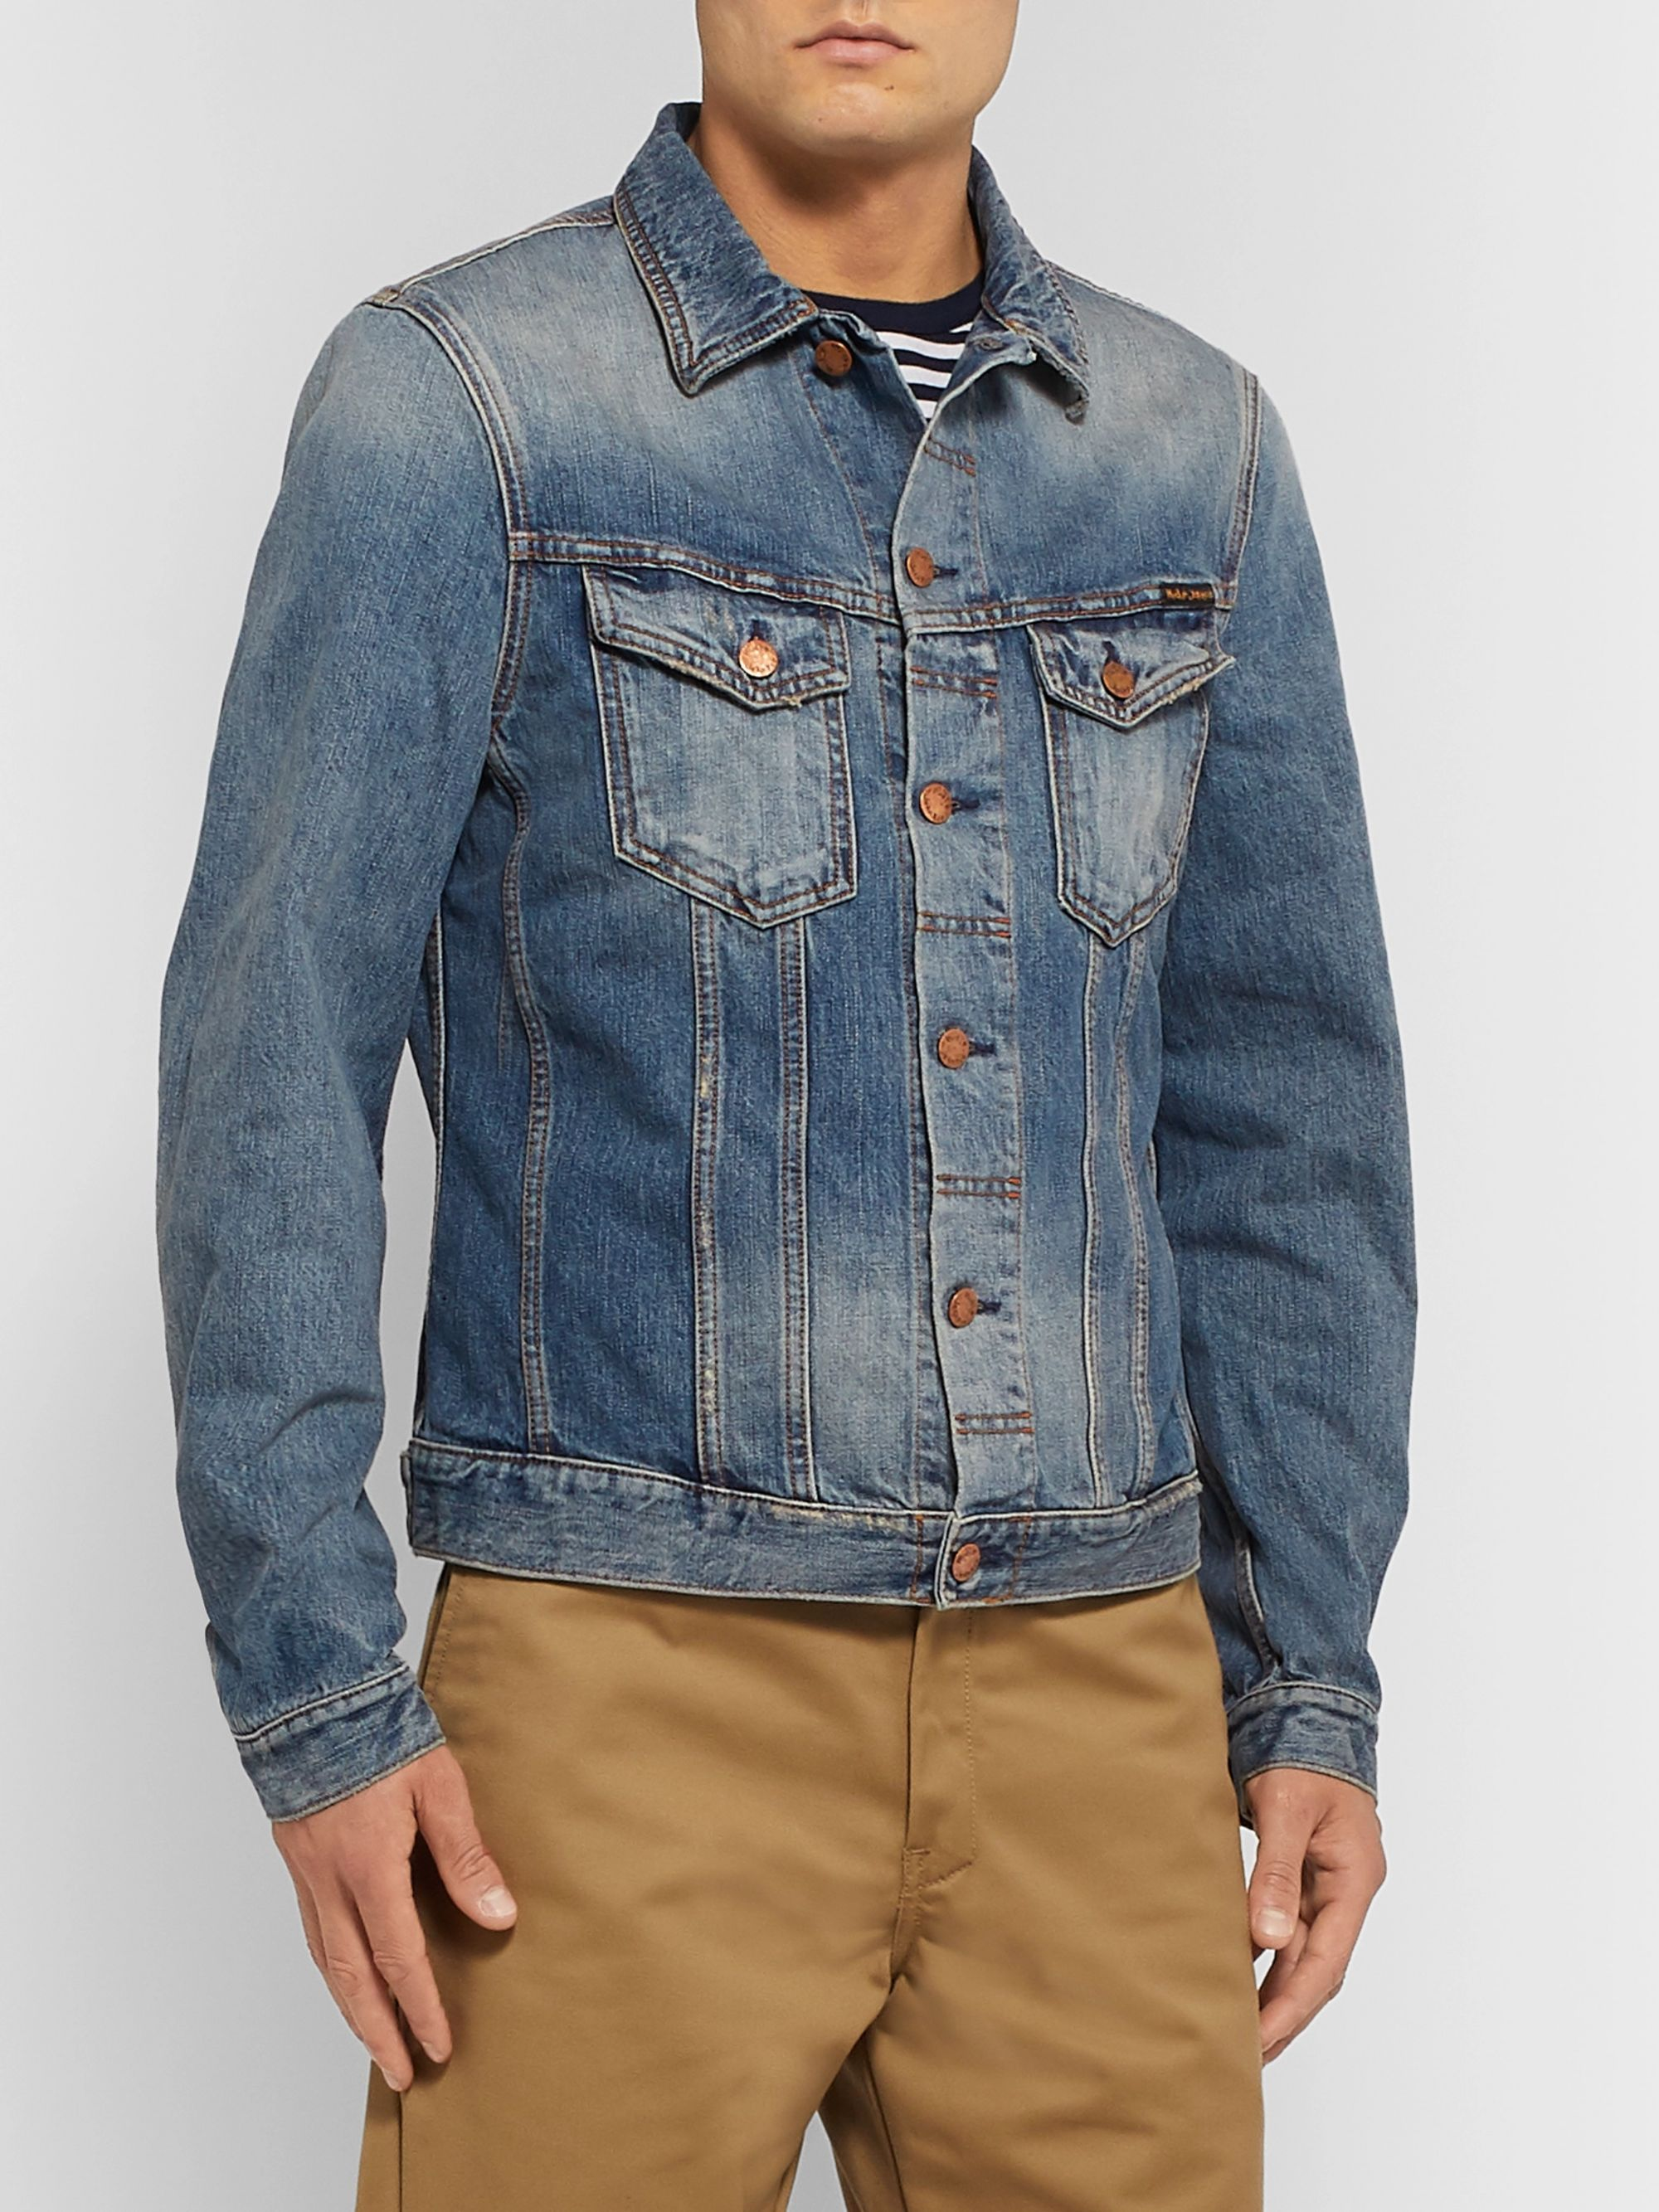 Nudie Jeans Billy Slim-Fit Organic Denim Jacket